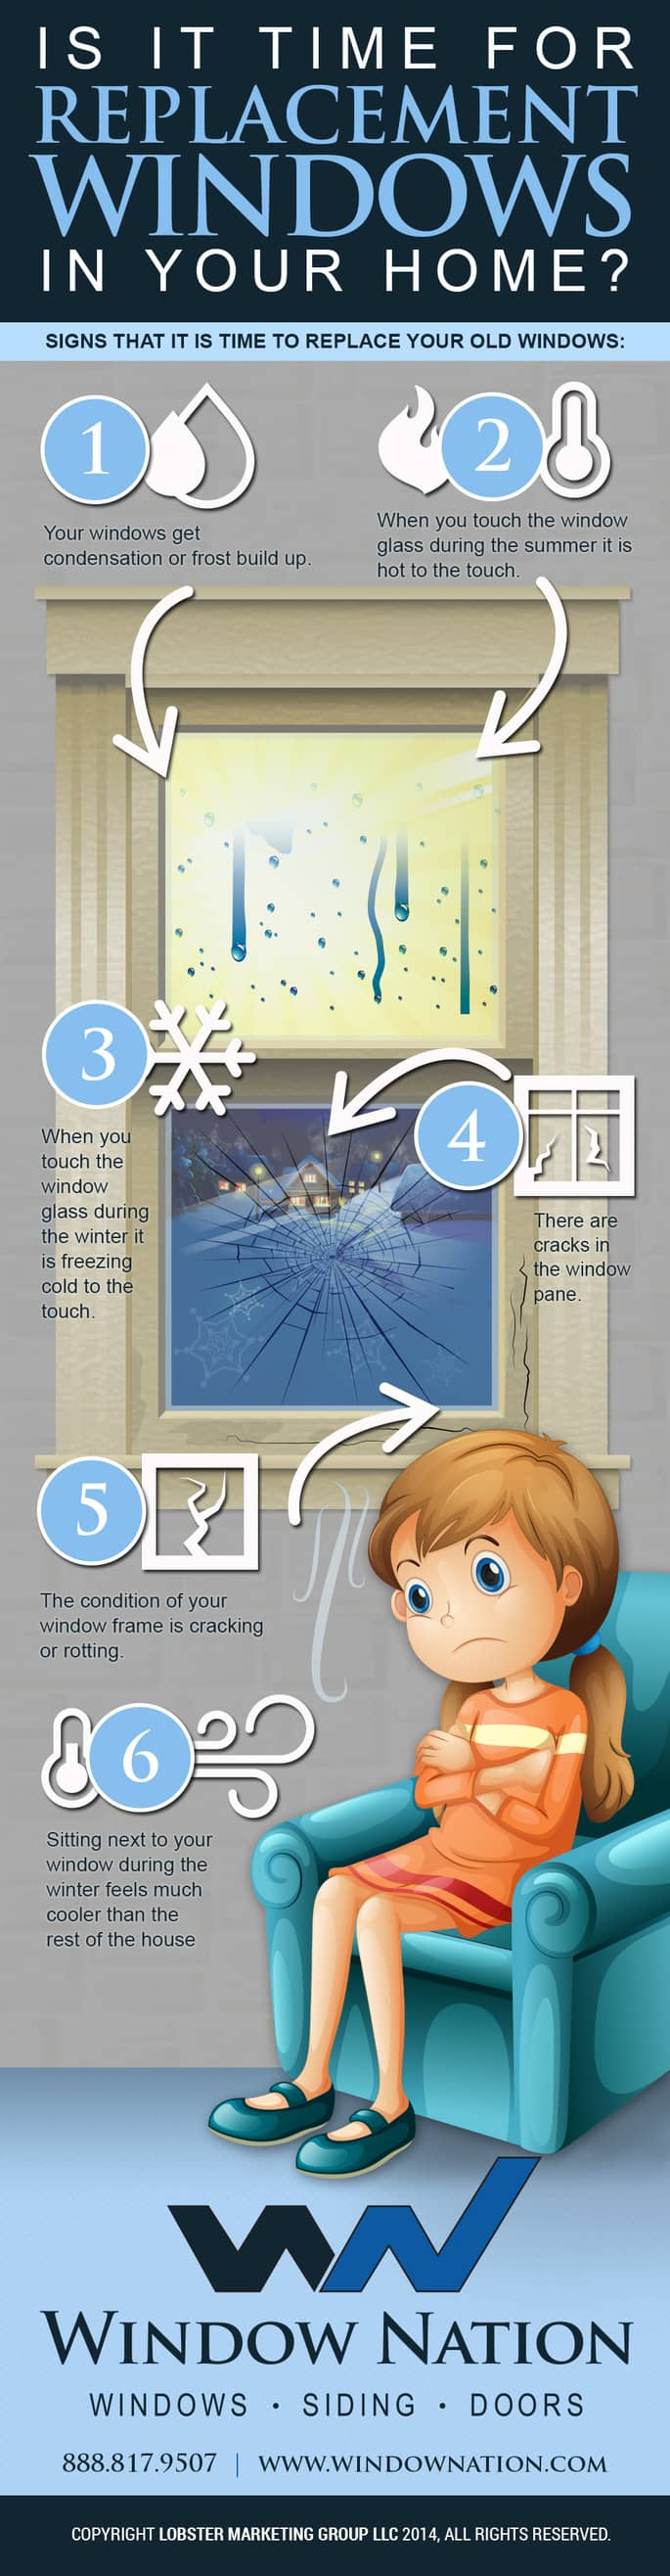 signs you need replacement windows